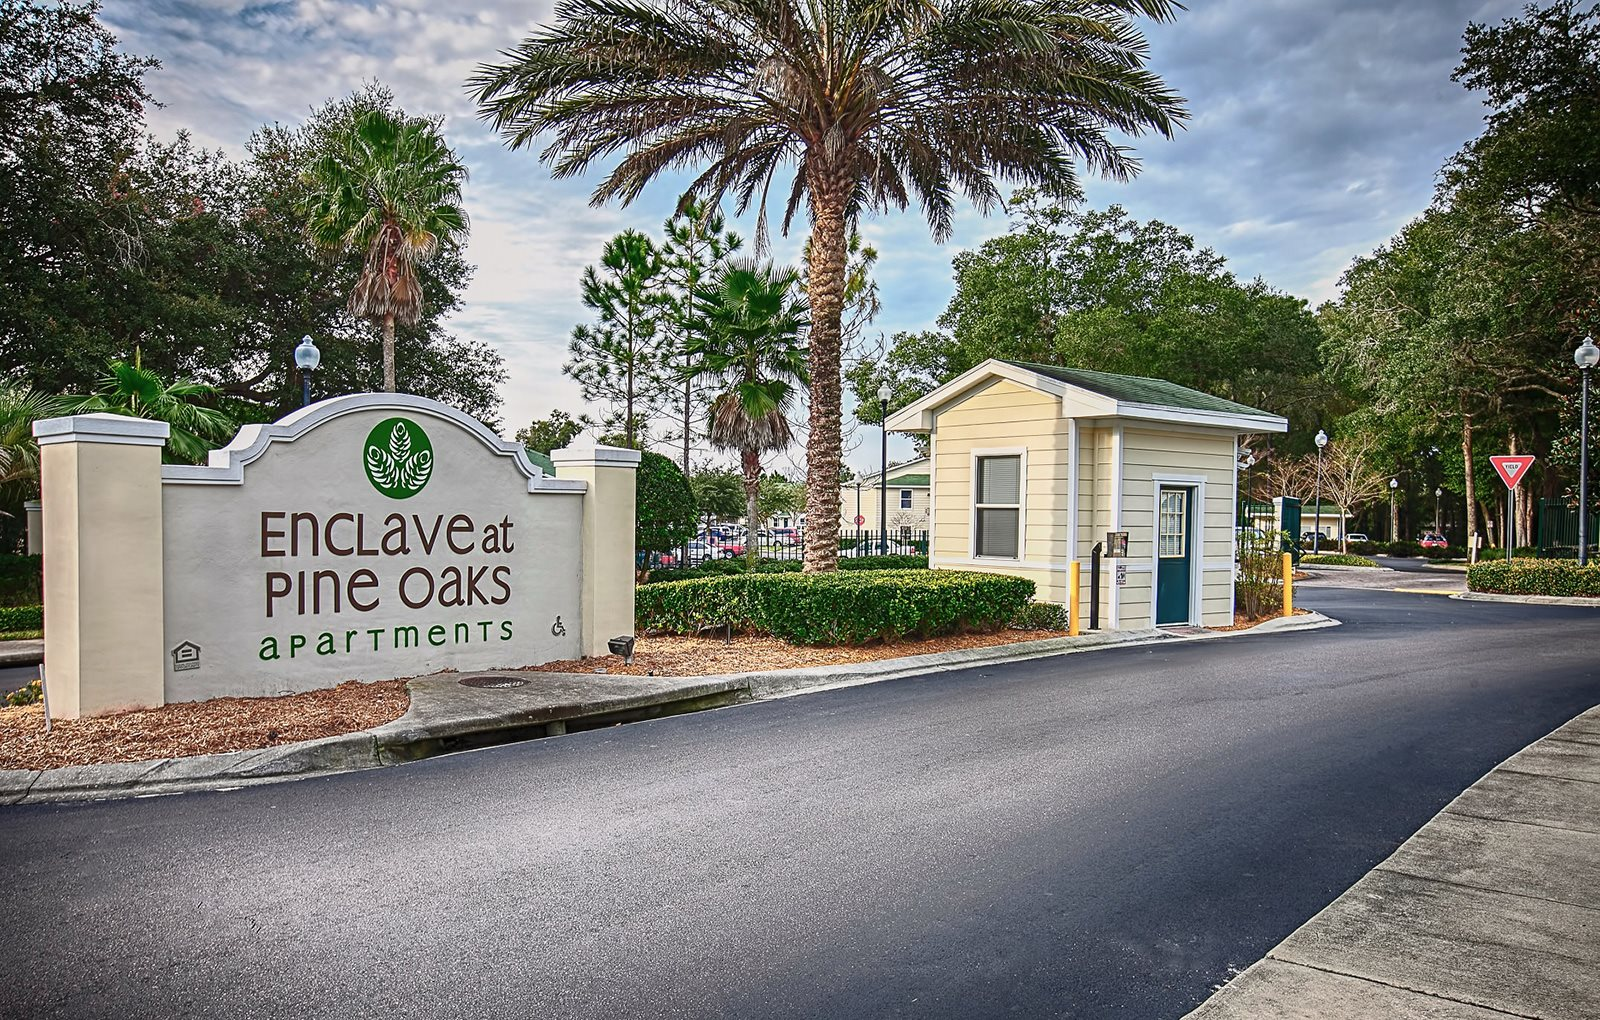 Image of Enclave at Pine Oaks Apartments in Deland, Florida